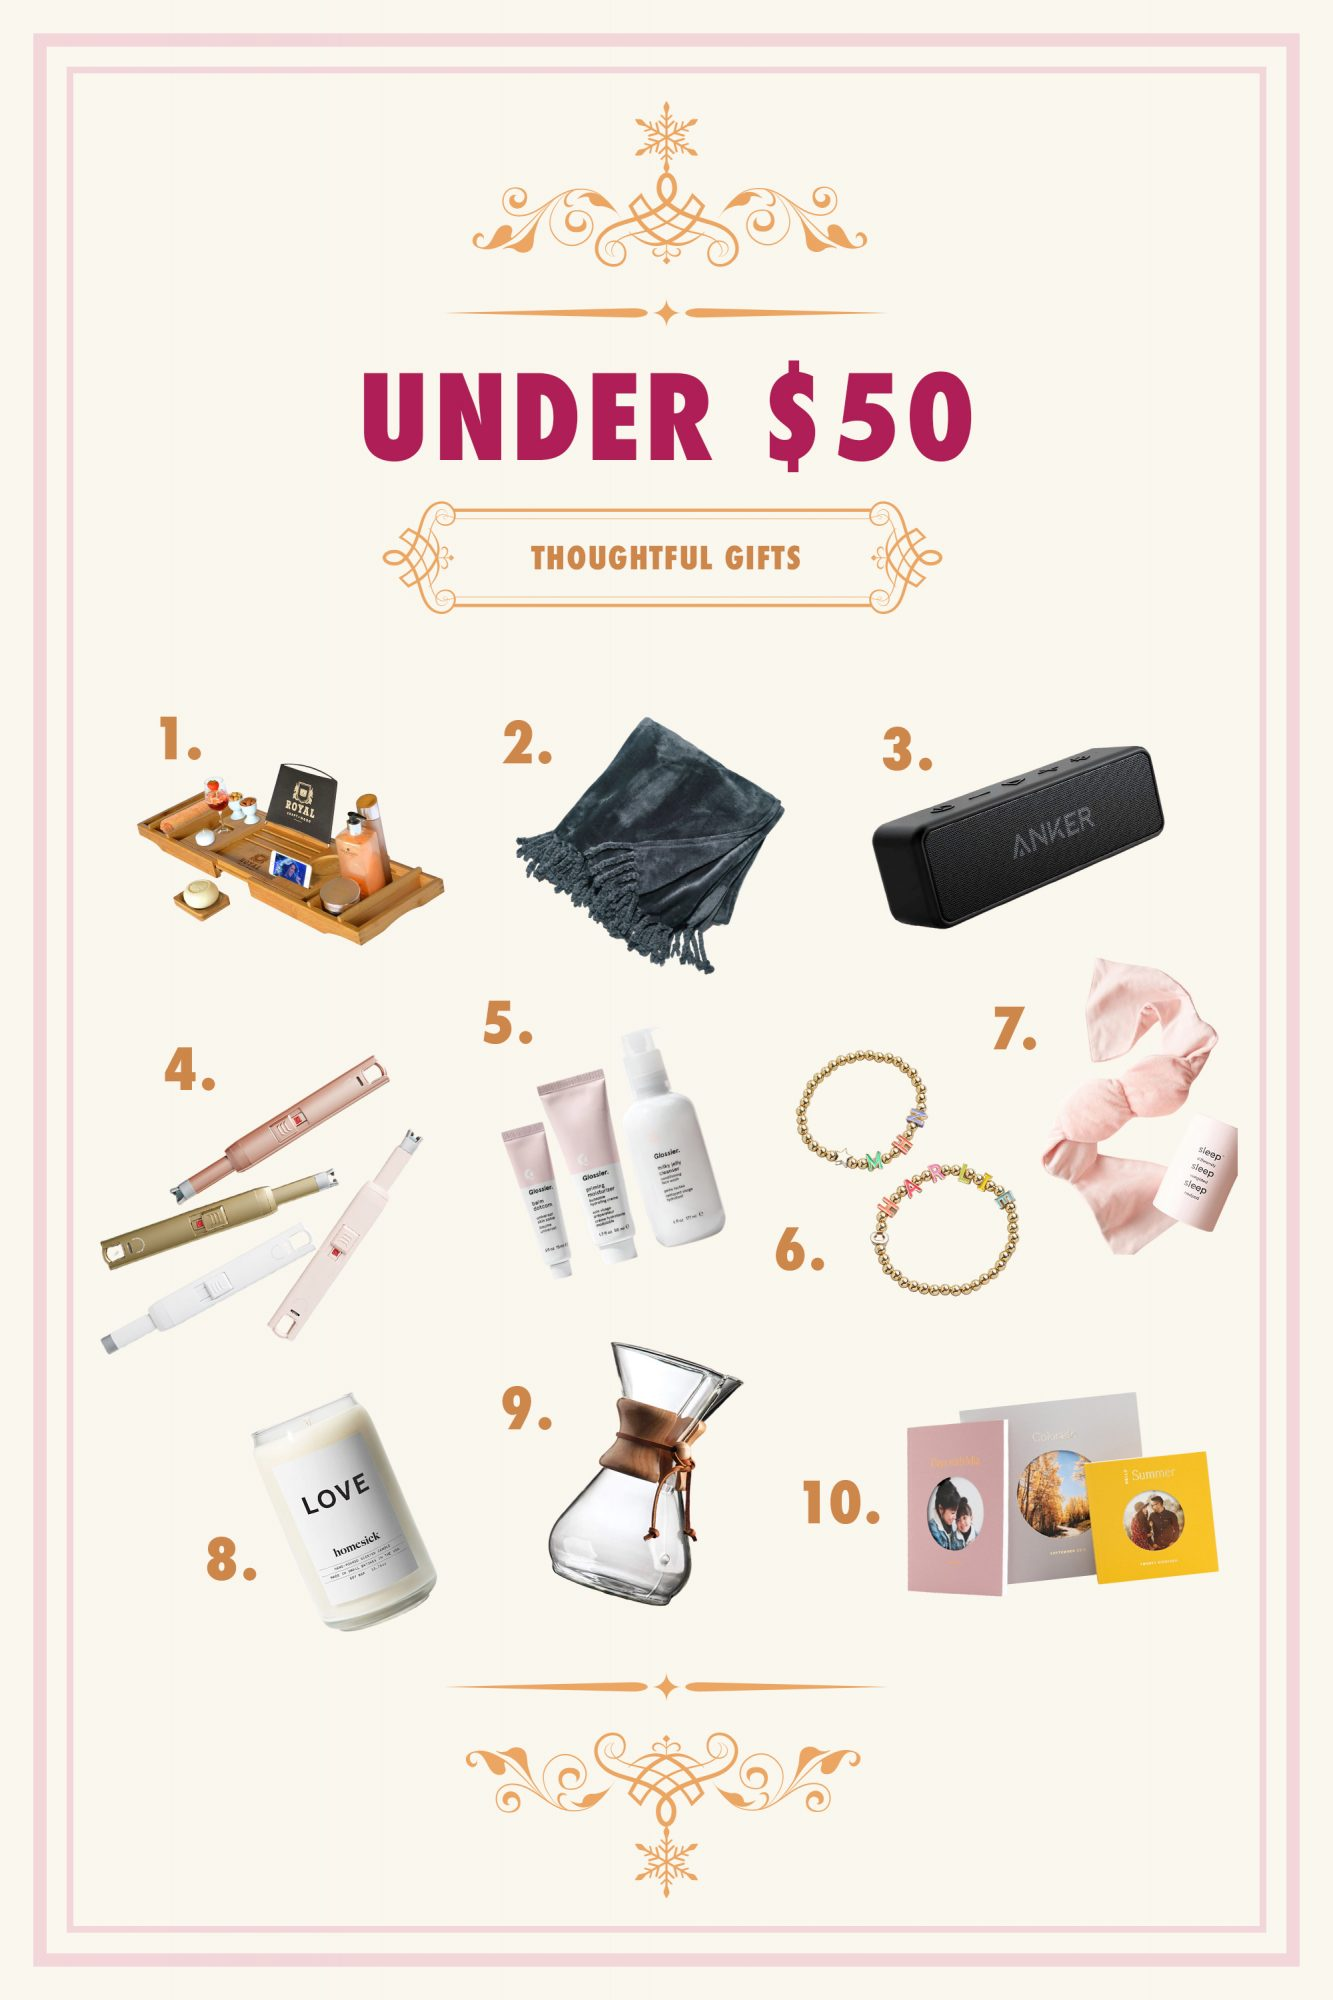 affordable thoughtful gifts